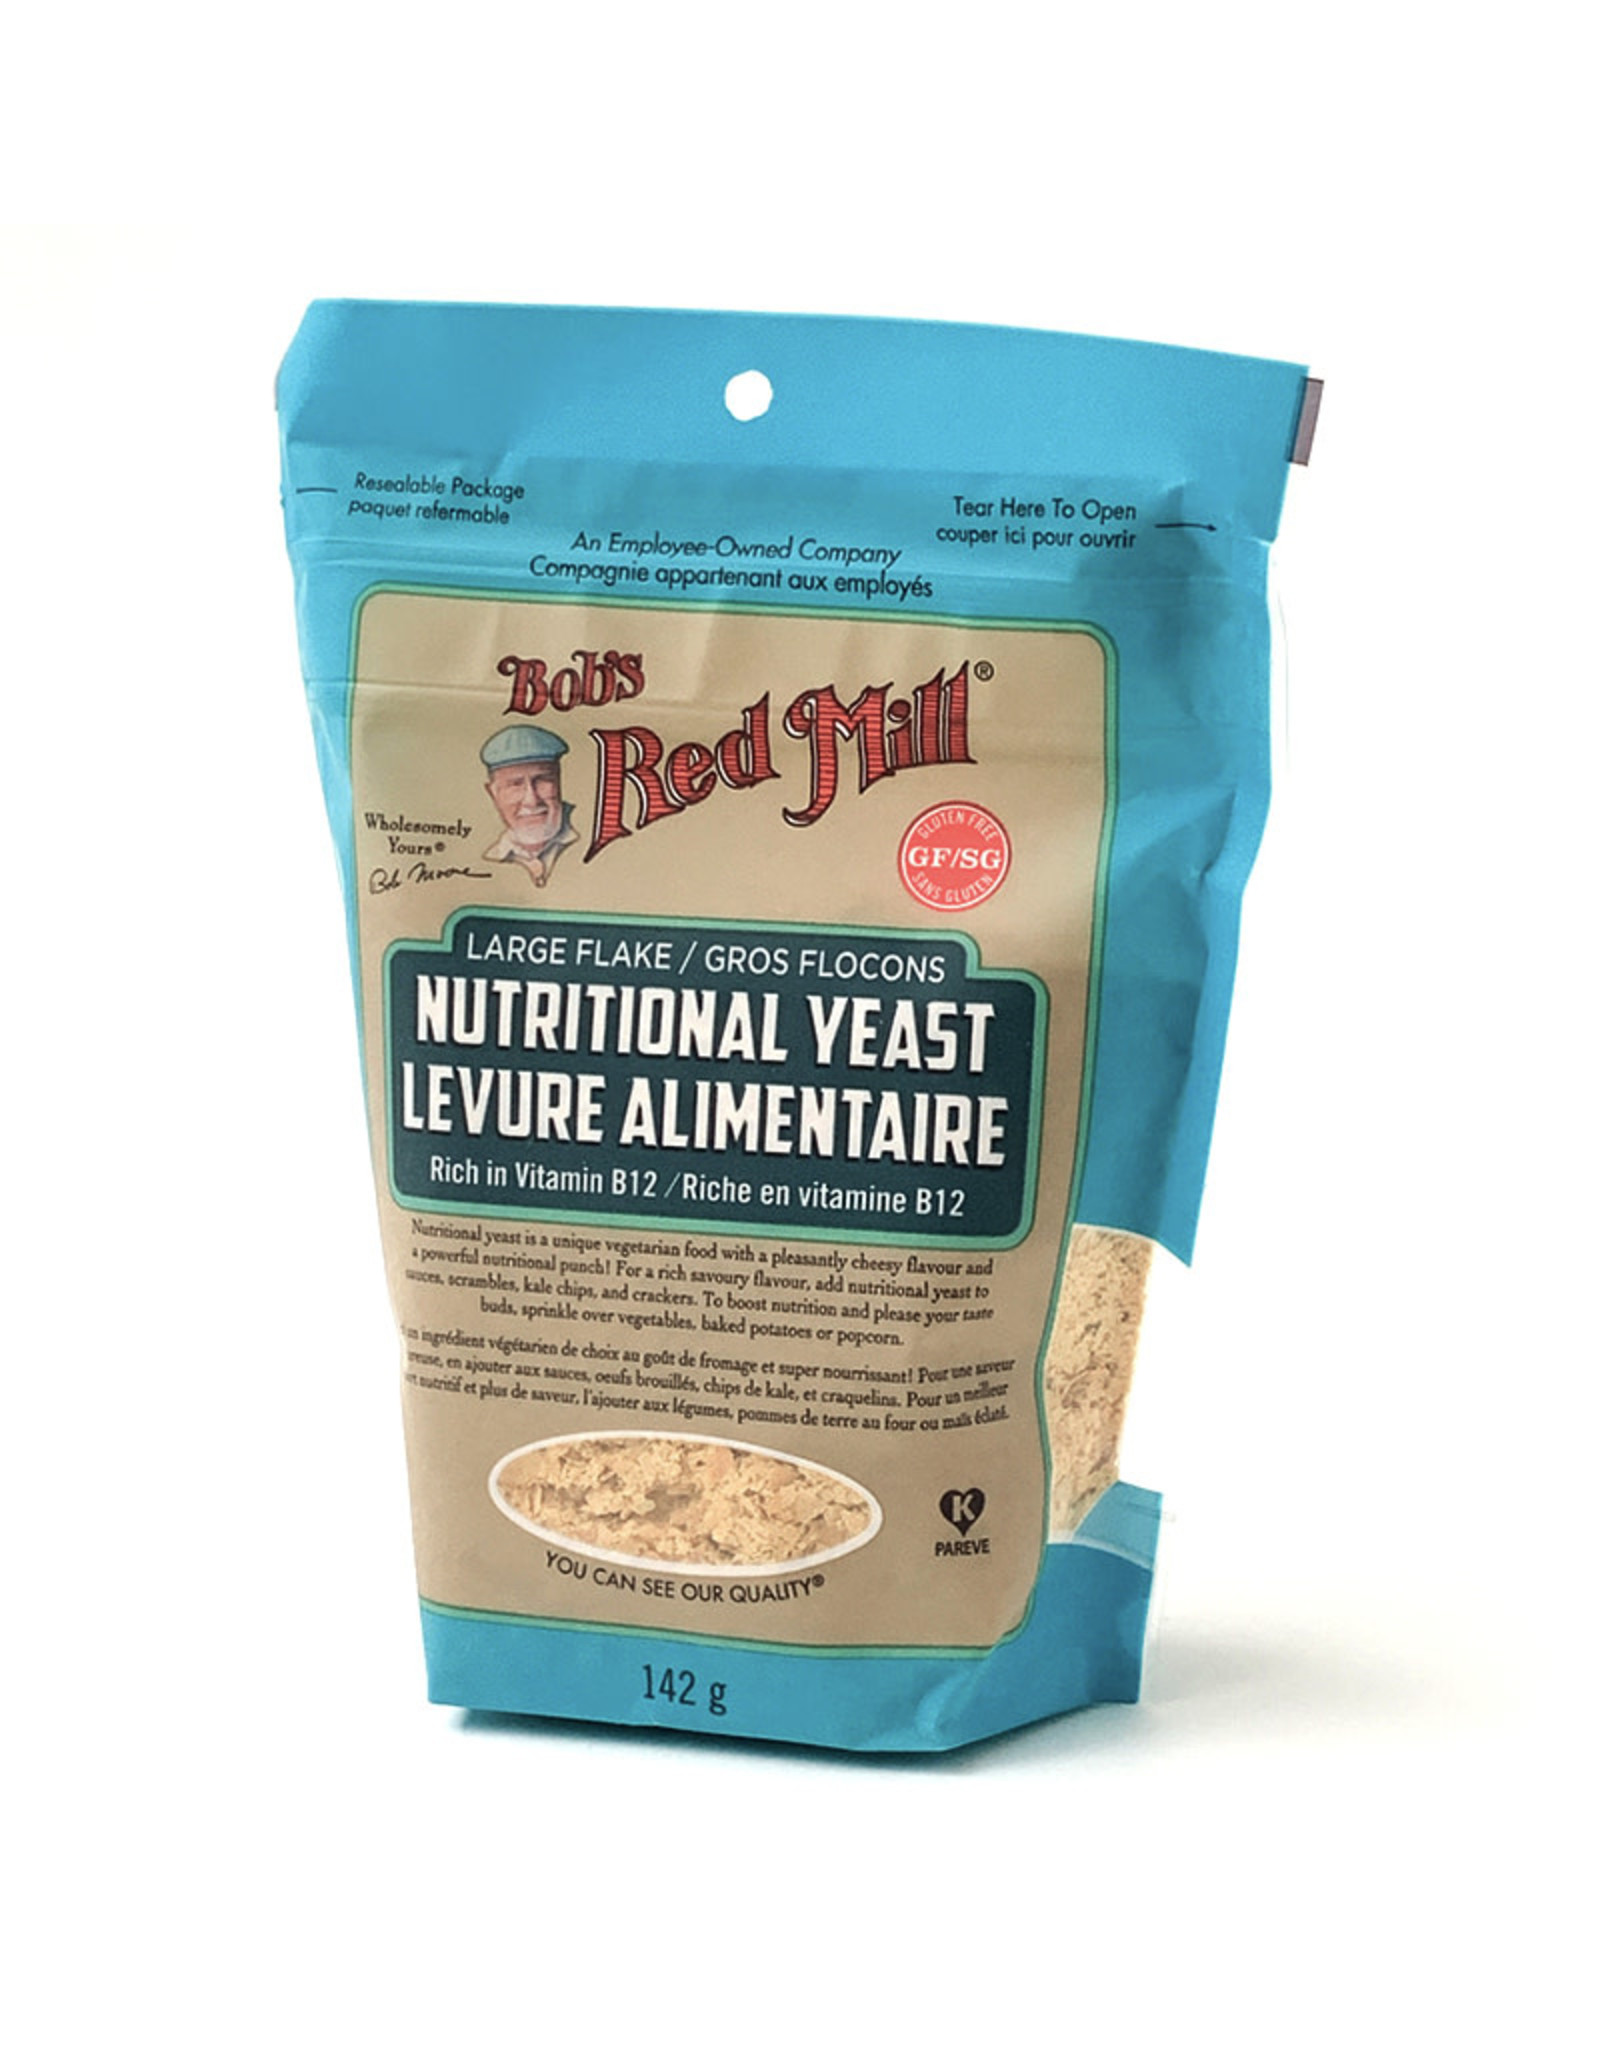 Bobs Red Mill Bobs Red Mill - Nutritional Yeast Flakes (142g)